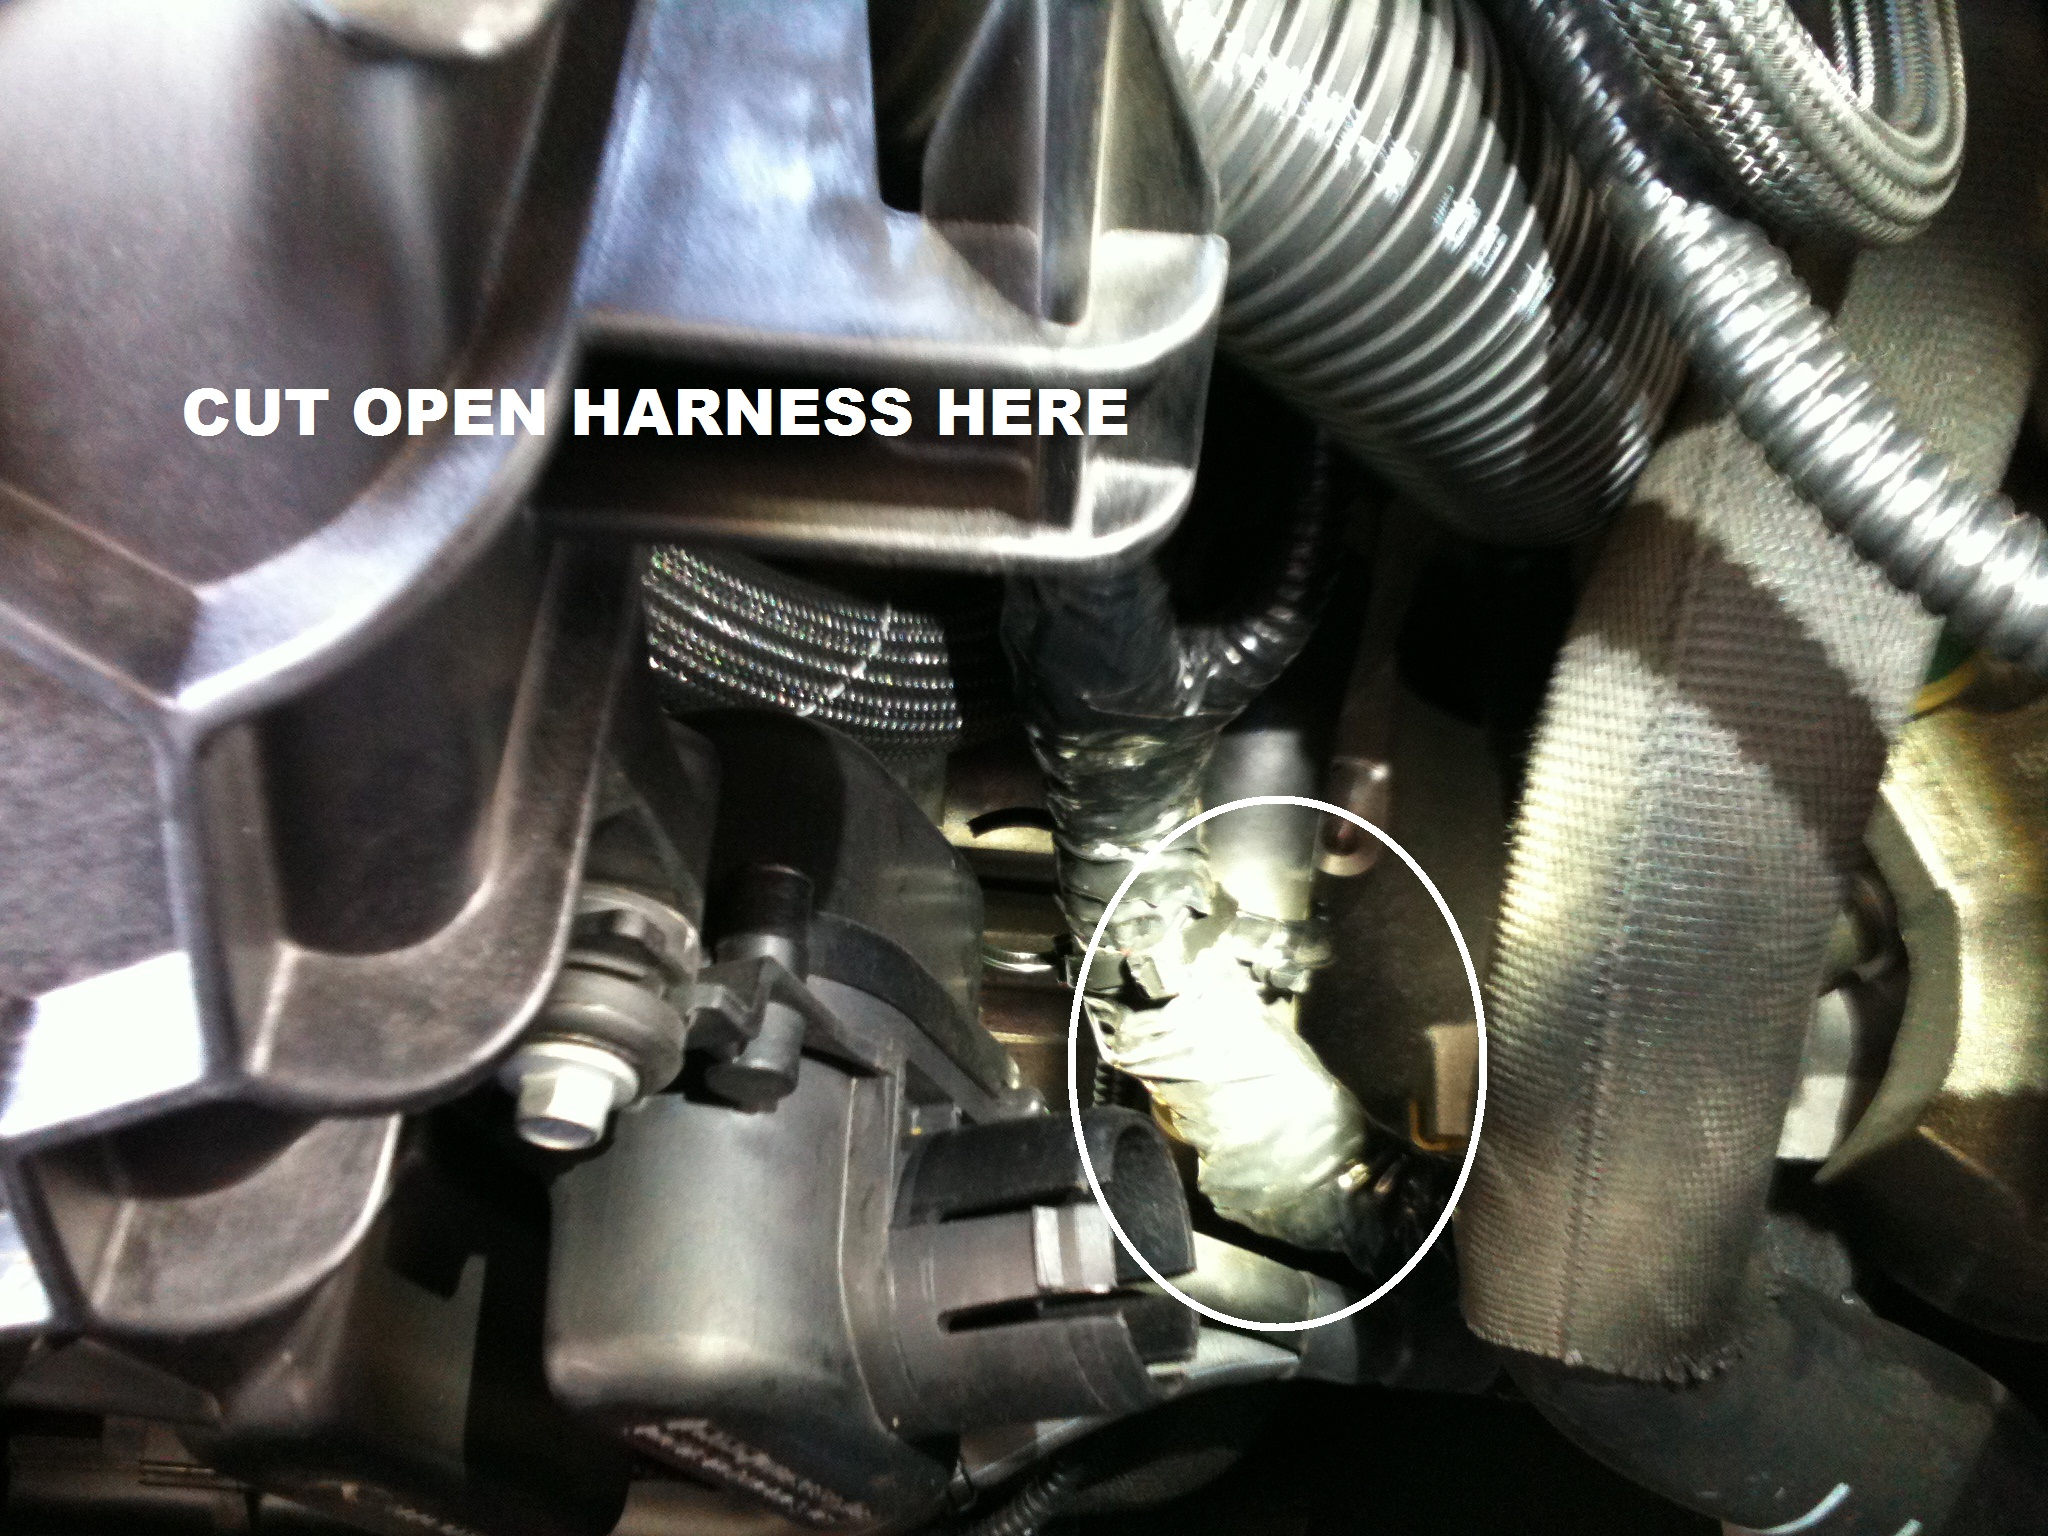 Engine Stalling Solution Do It Yourself Fix Where Is The Wiring Harness Located Name Img 0003 Views 31578 Size 107 Mb